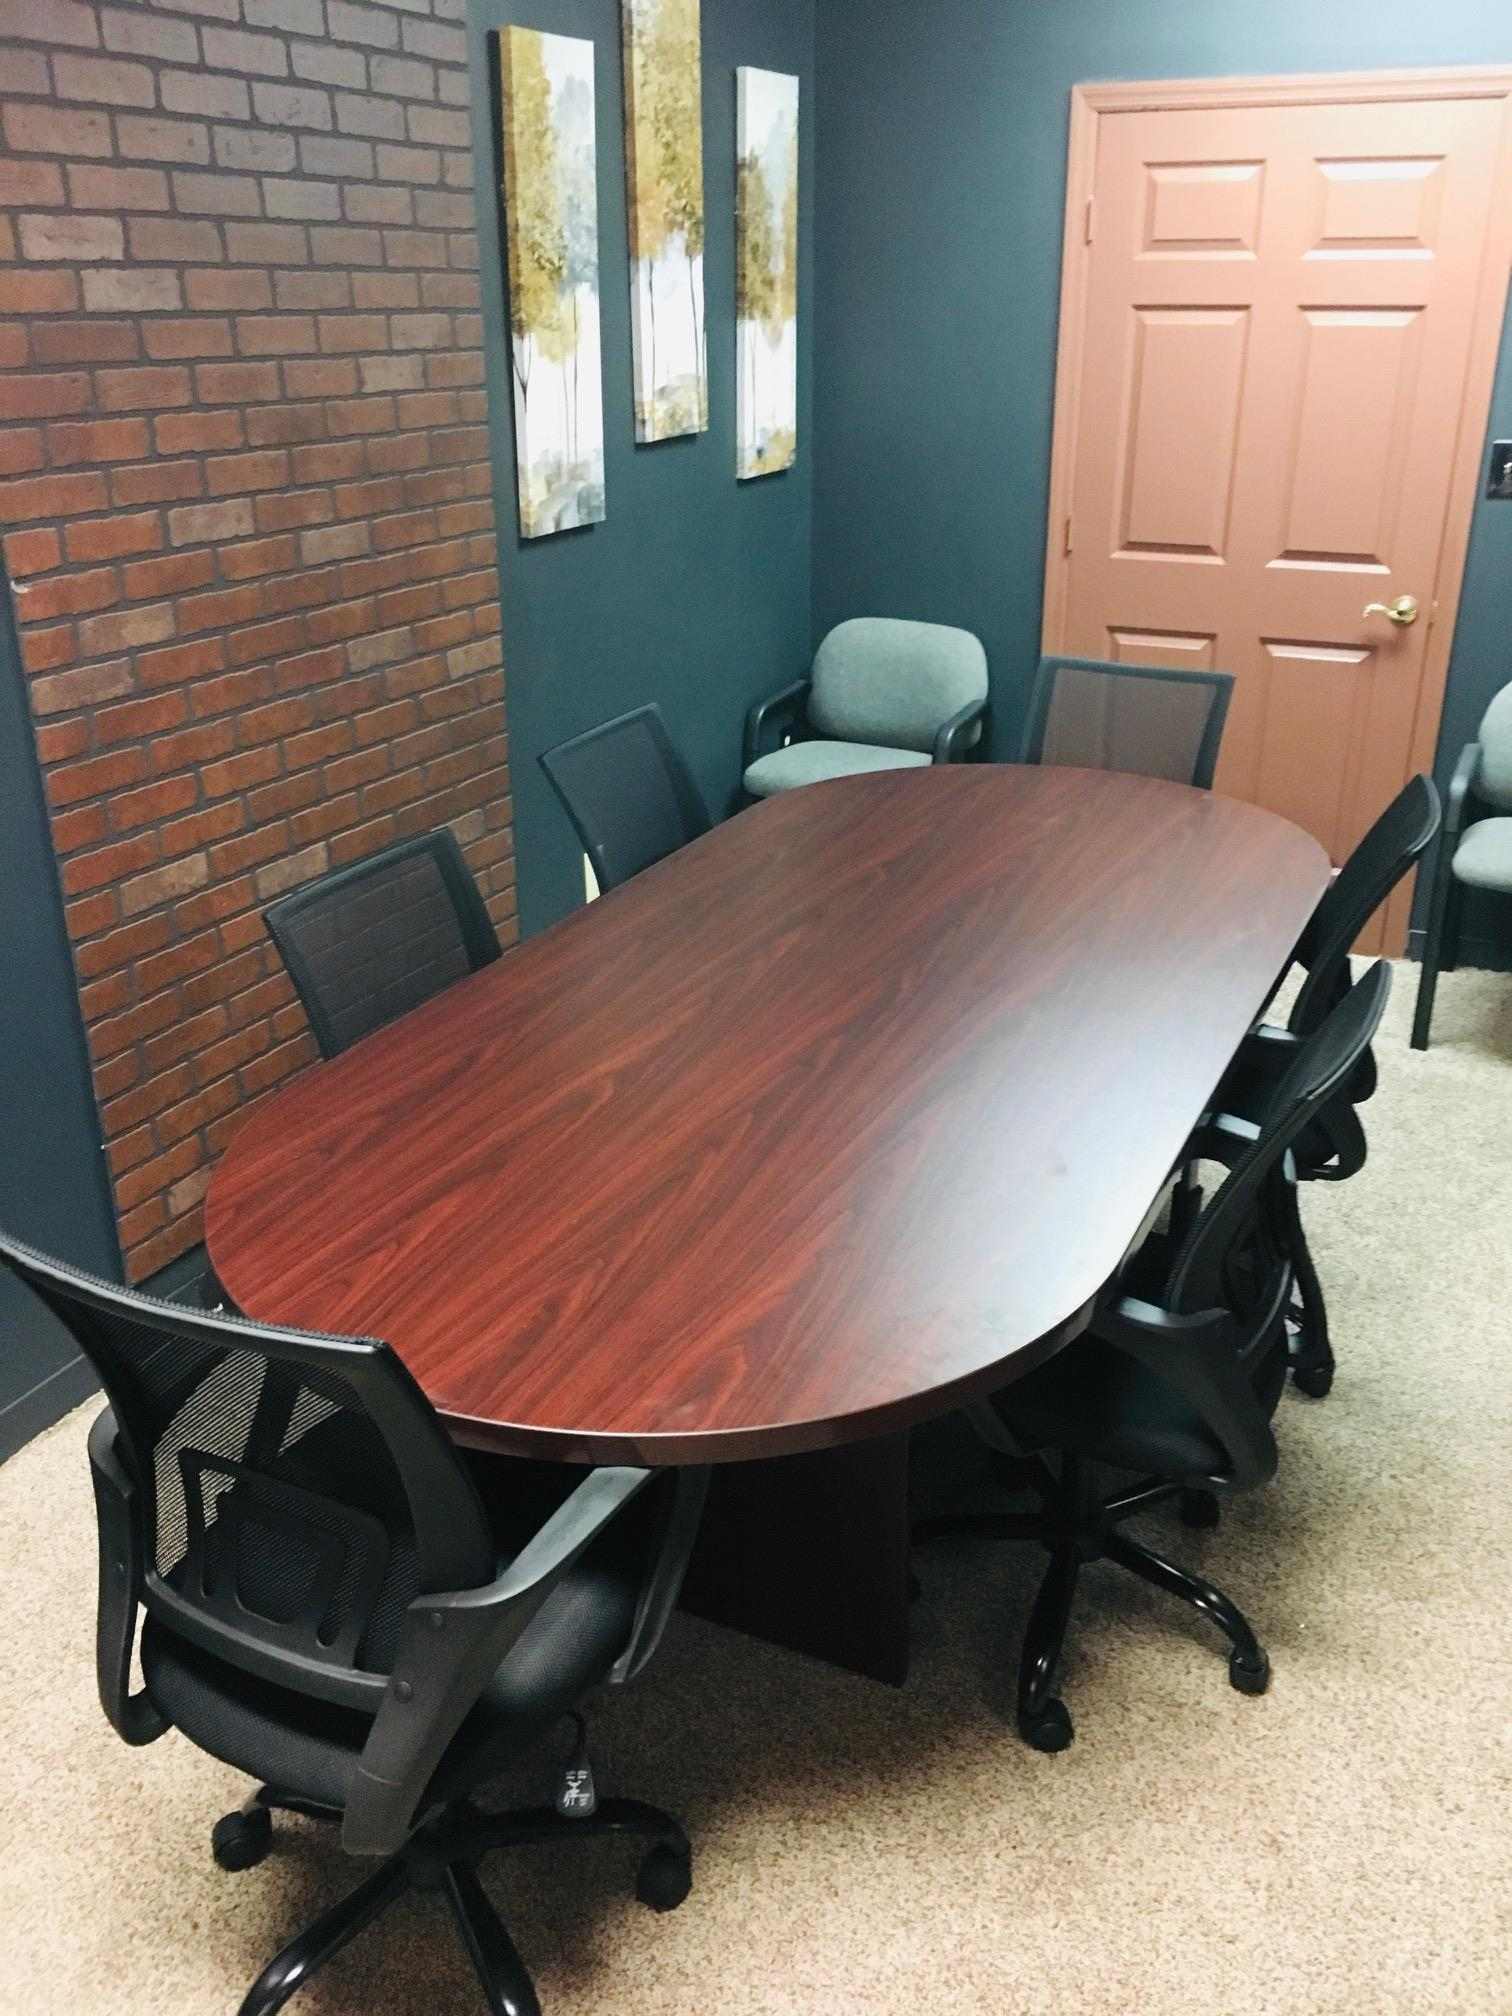 Sharicom Workplace at Chinoe Center - The Eclipse Meeting Room